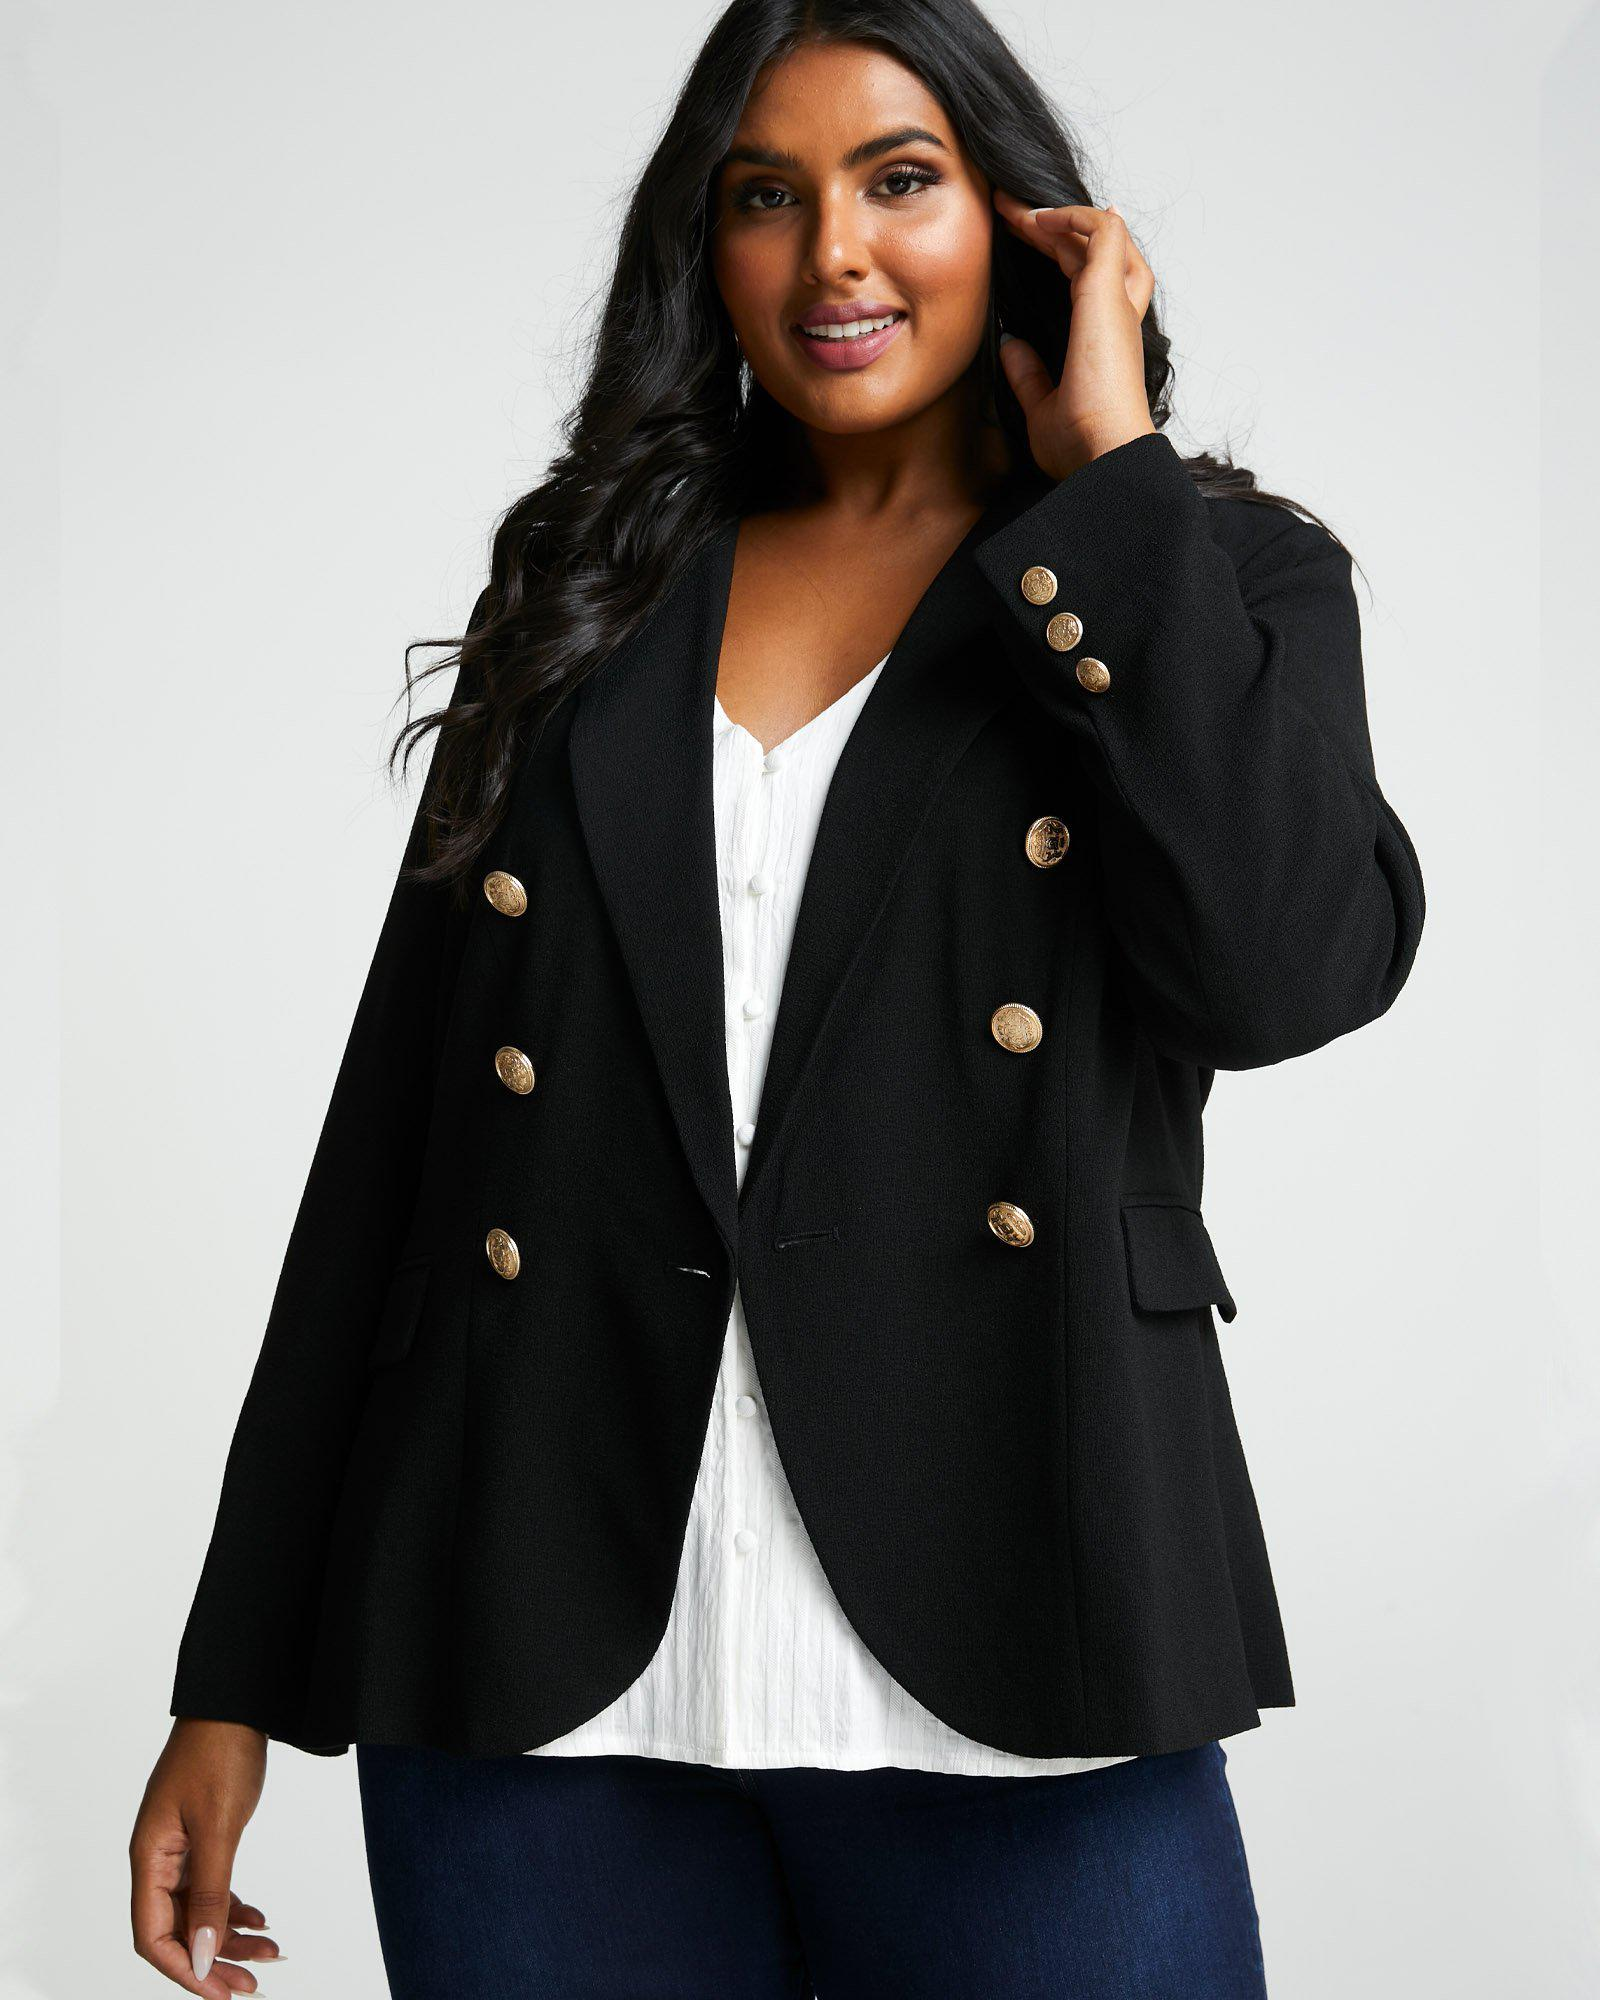 Clever Jacket 4